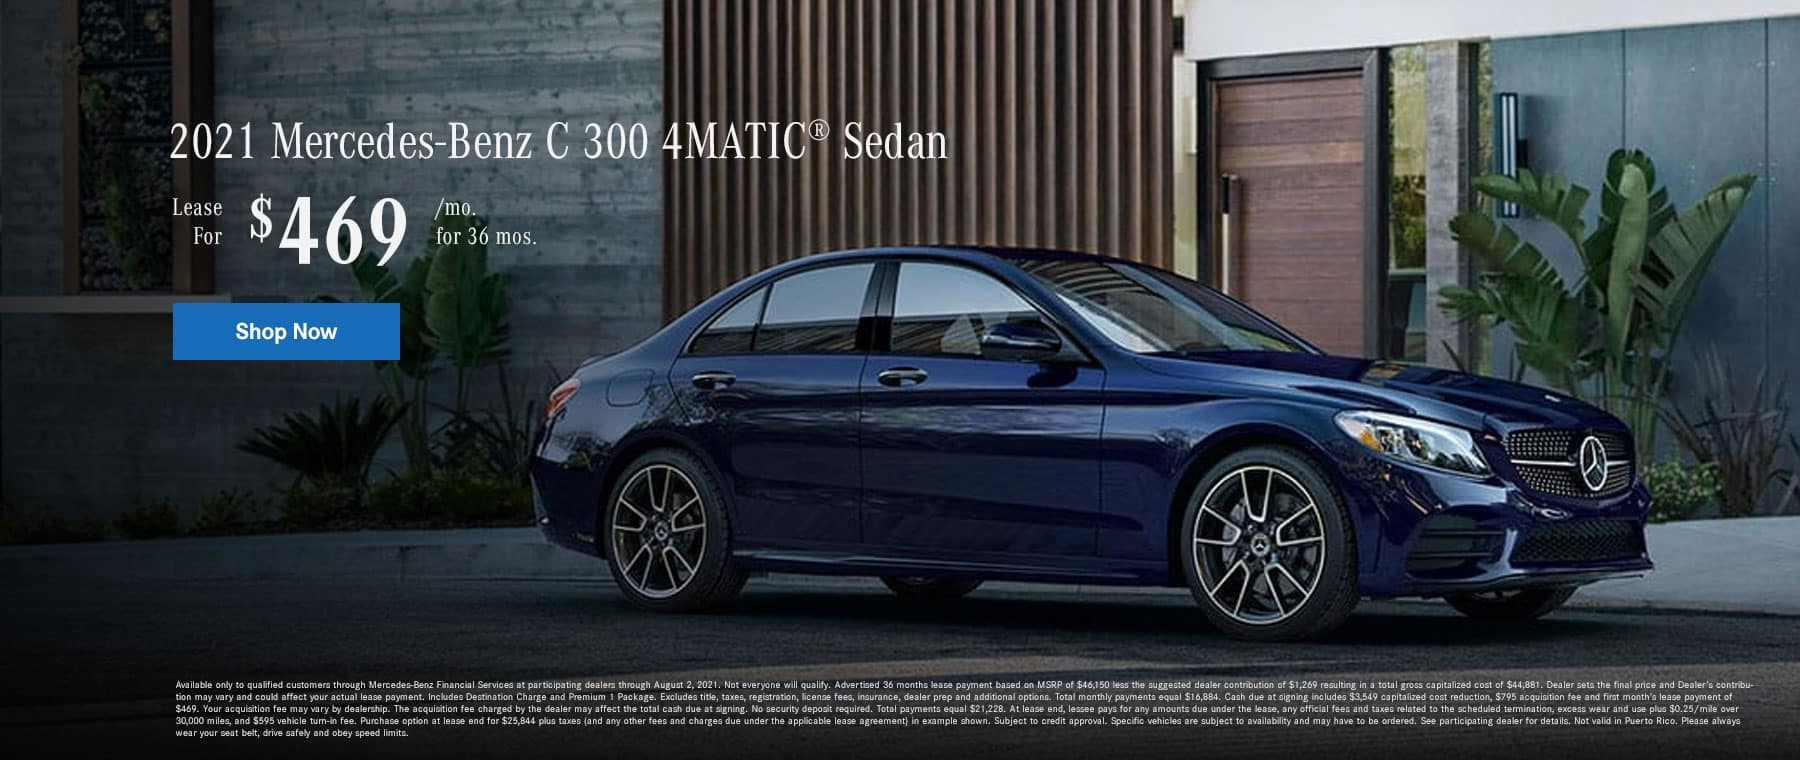 2021 Mercedes-Benz C 300 4MATIC® Sedan, Lease for $469 Per Month for 36 Months